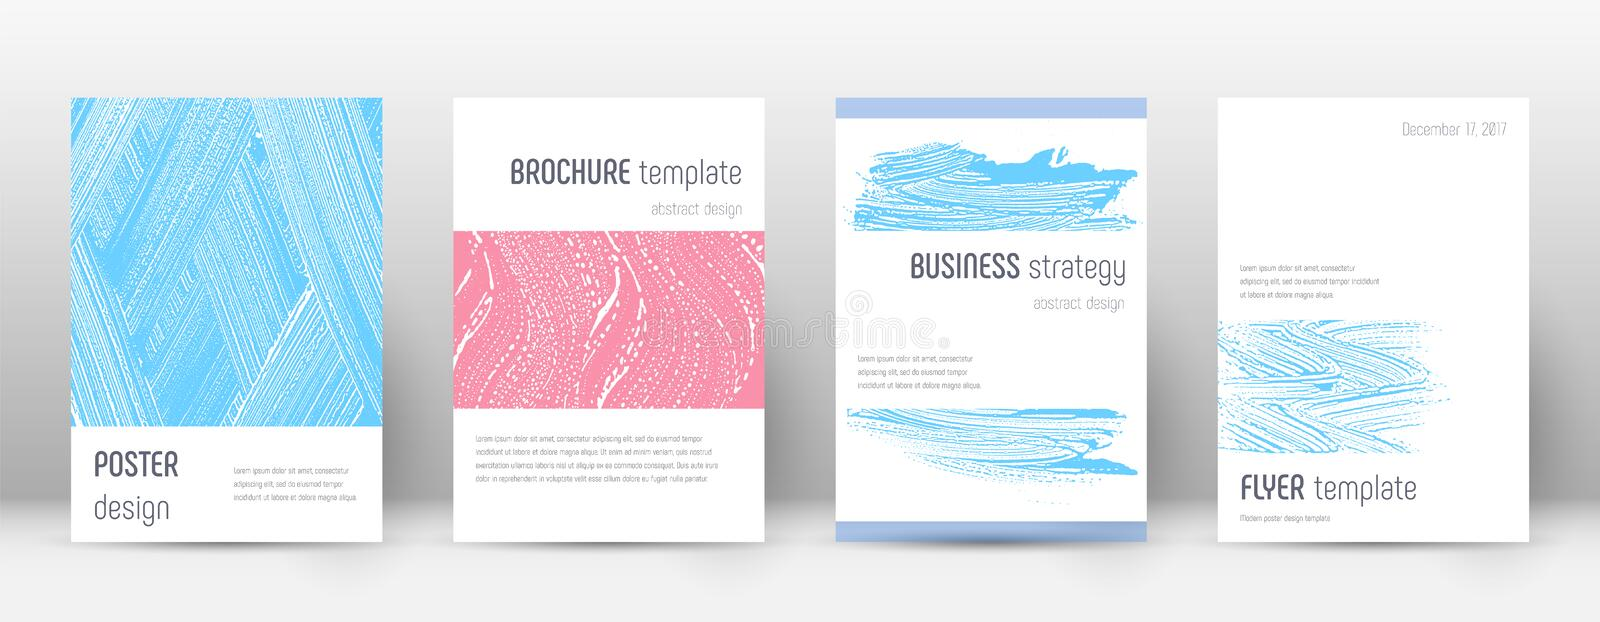 Cover page design template. Minimalistic brochure. Layout. Classy trendy abstract cover page. Pink and blue grunge texture background. Adorable poster vector illustration